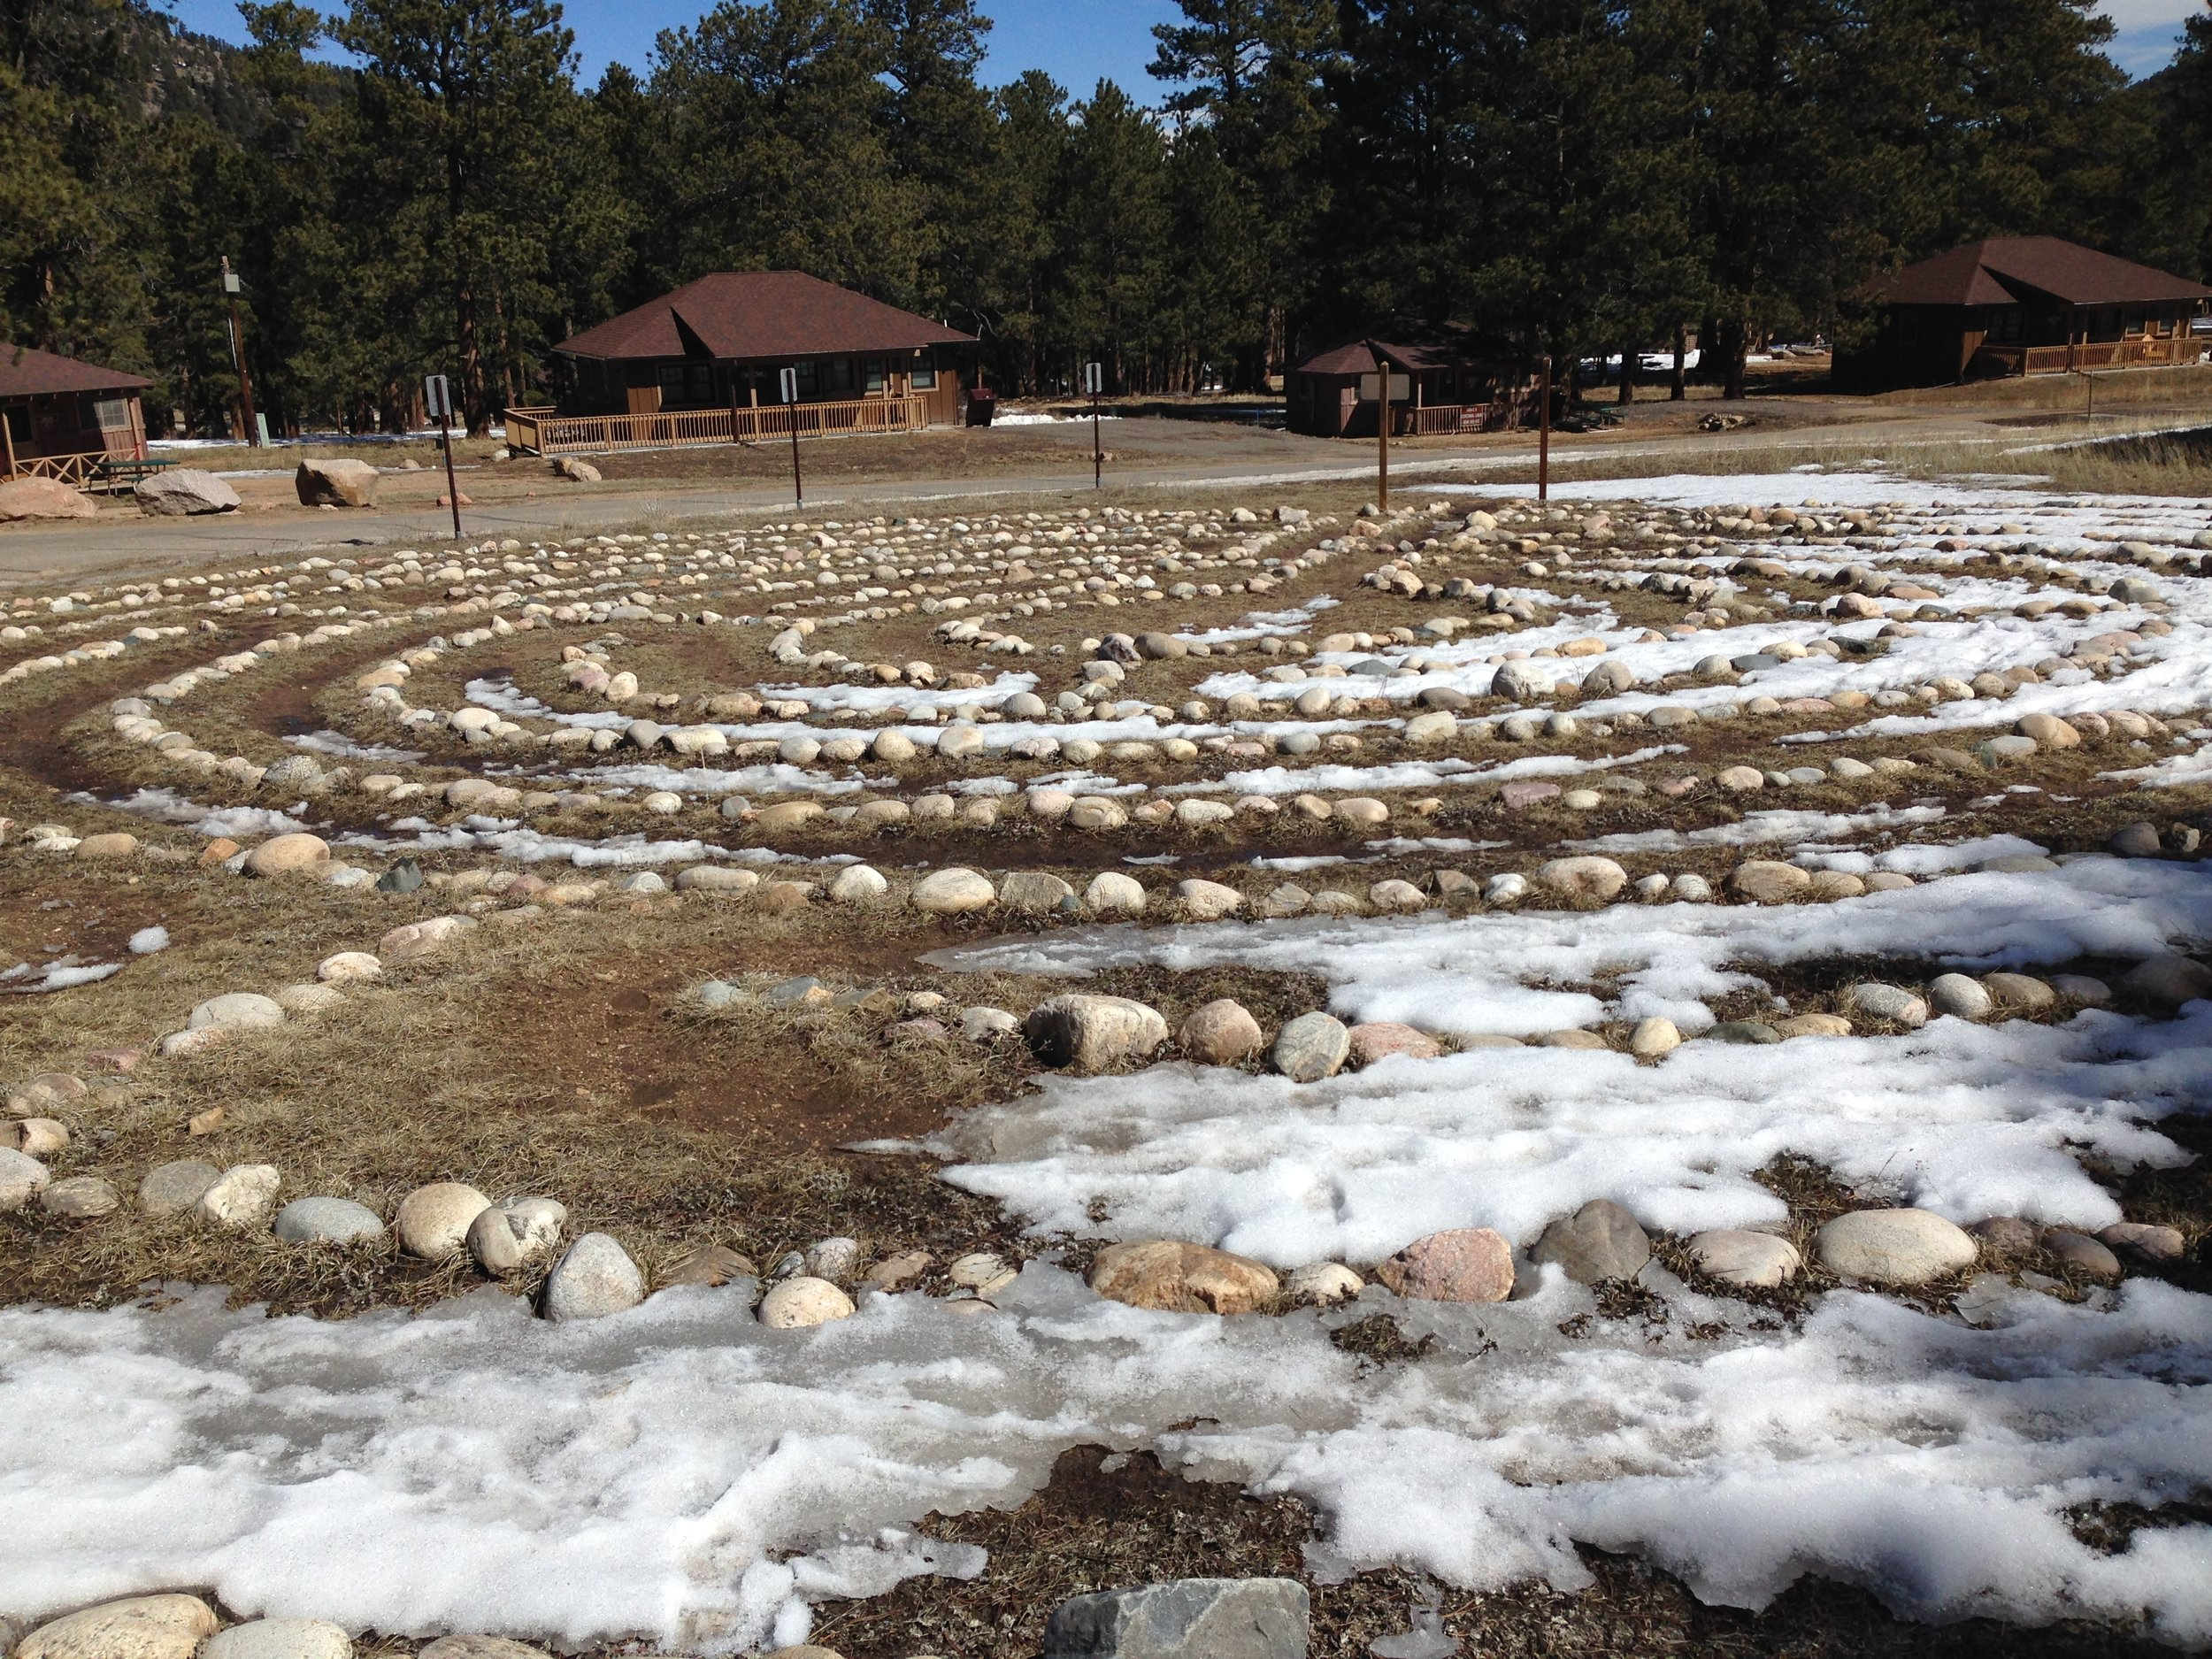 fourth labyrinth, this at YMCA of the Rockies